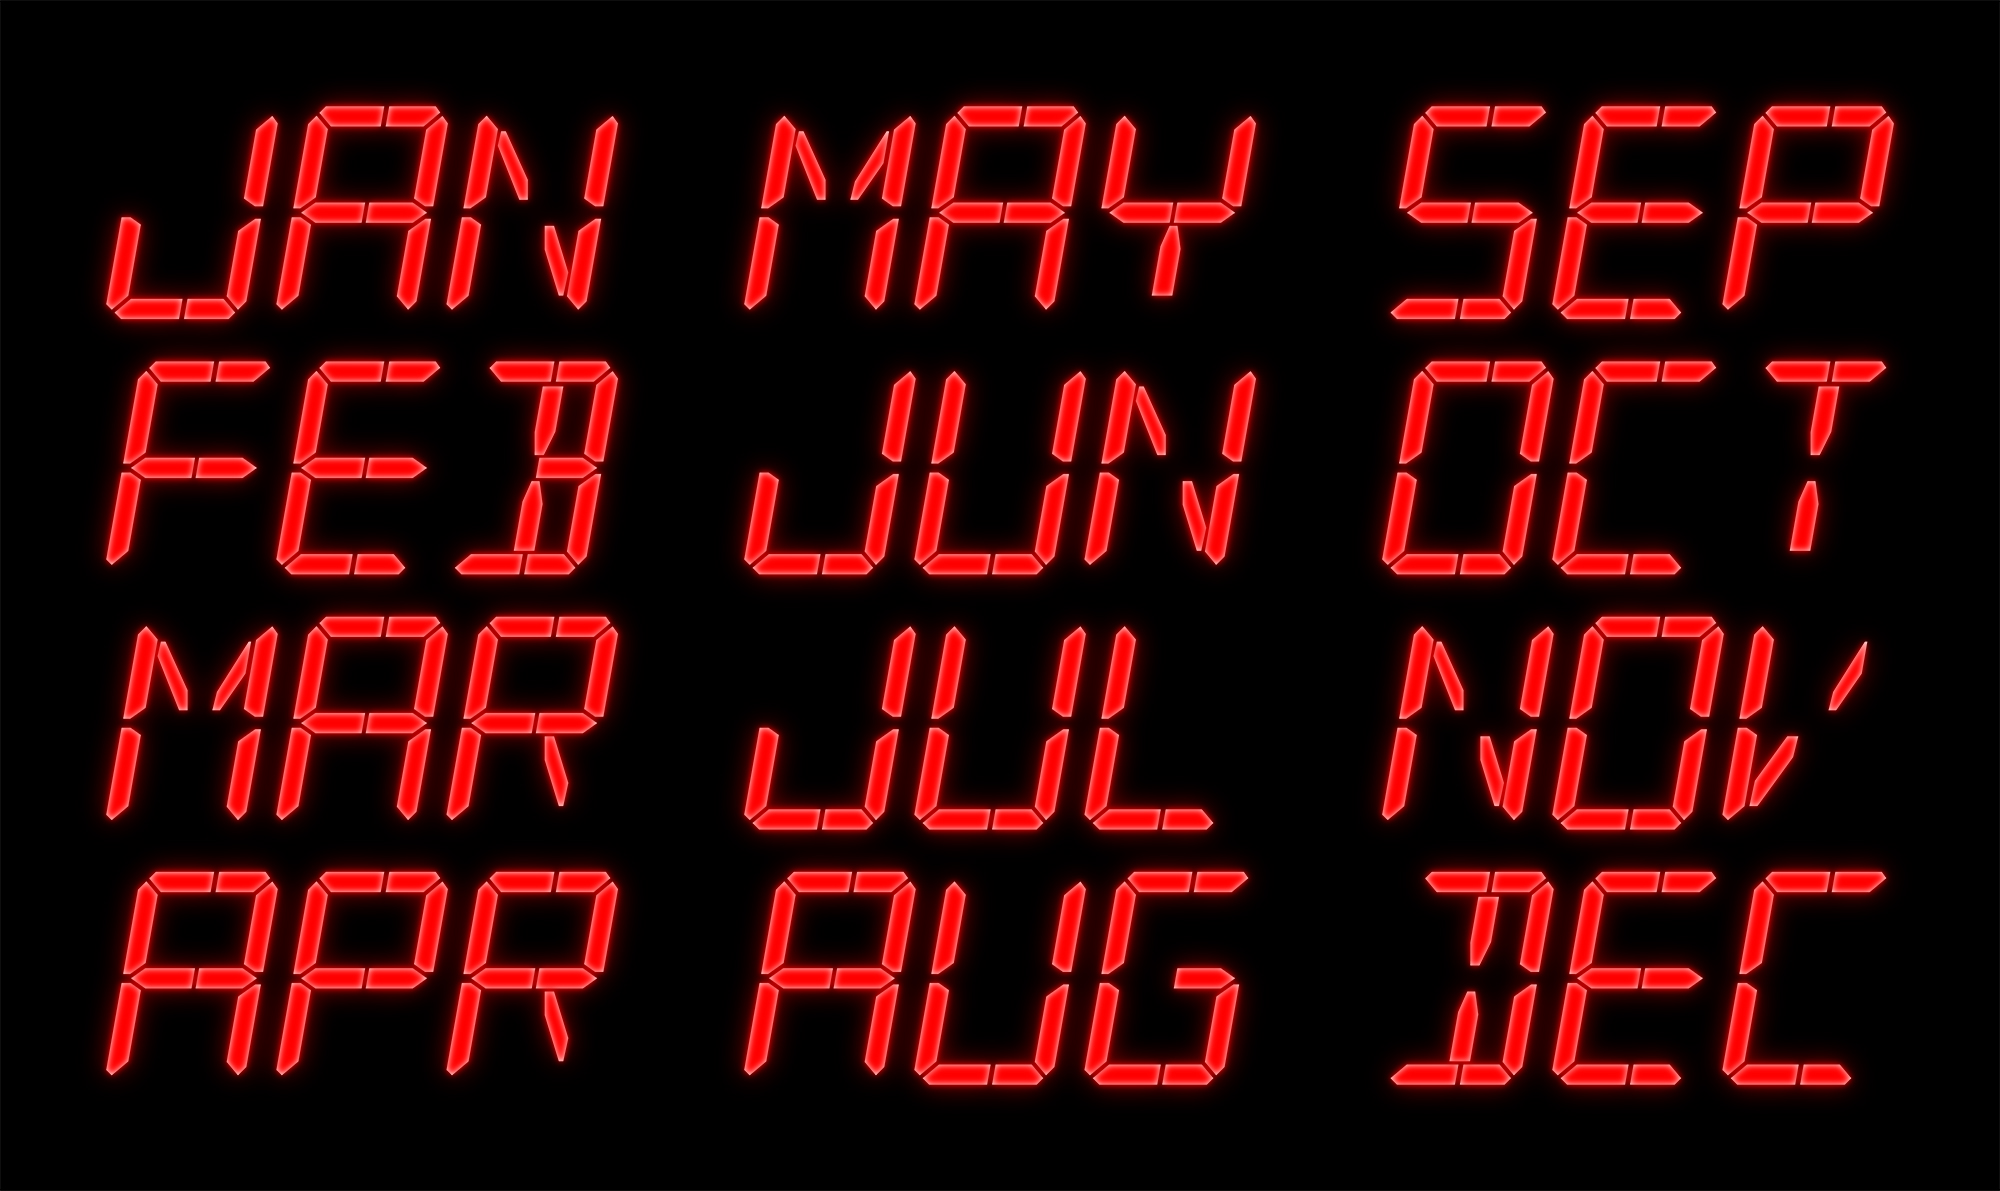 Time Circuit Display Led Characters Parts Not Included The Each Symbol Into 7segment It May Look Like This Month Abbreviations On 16 Segment Displays